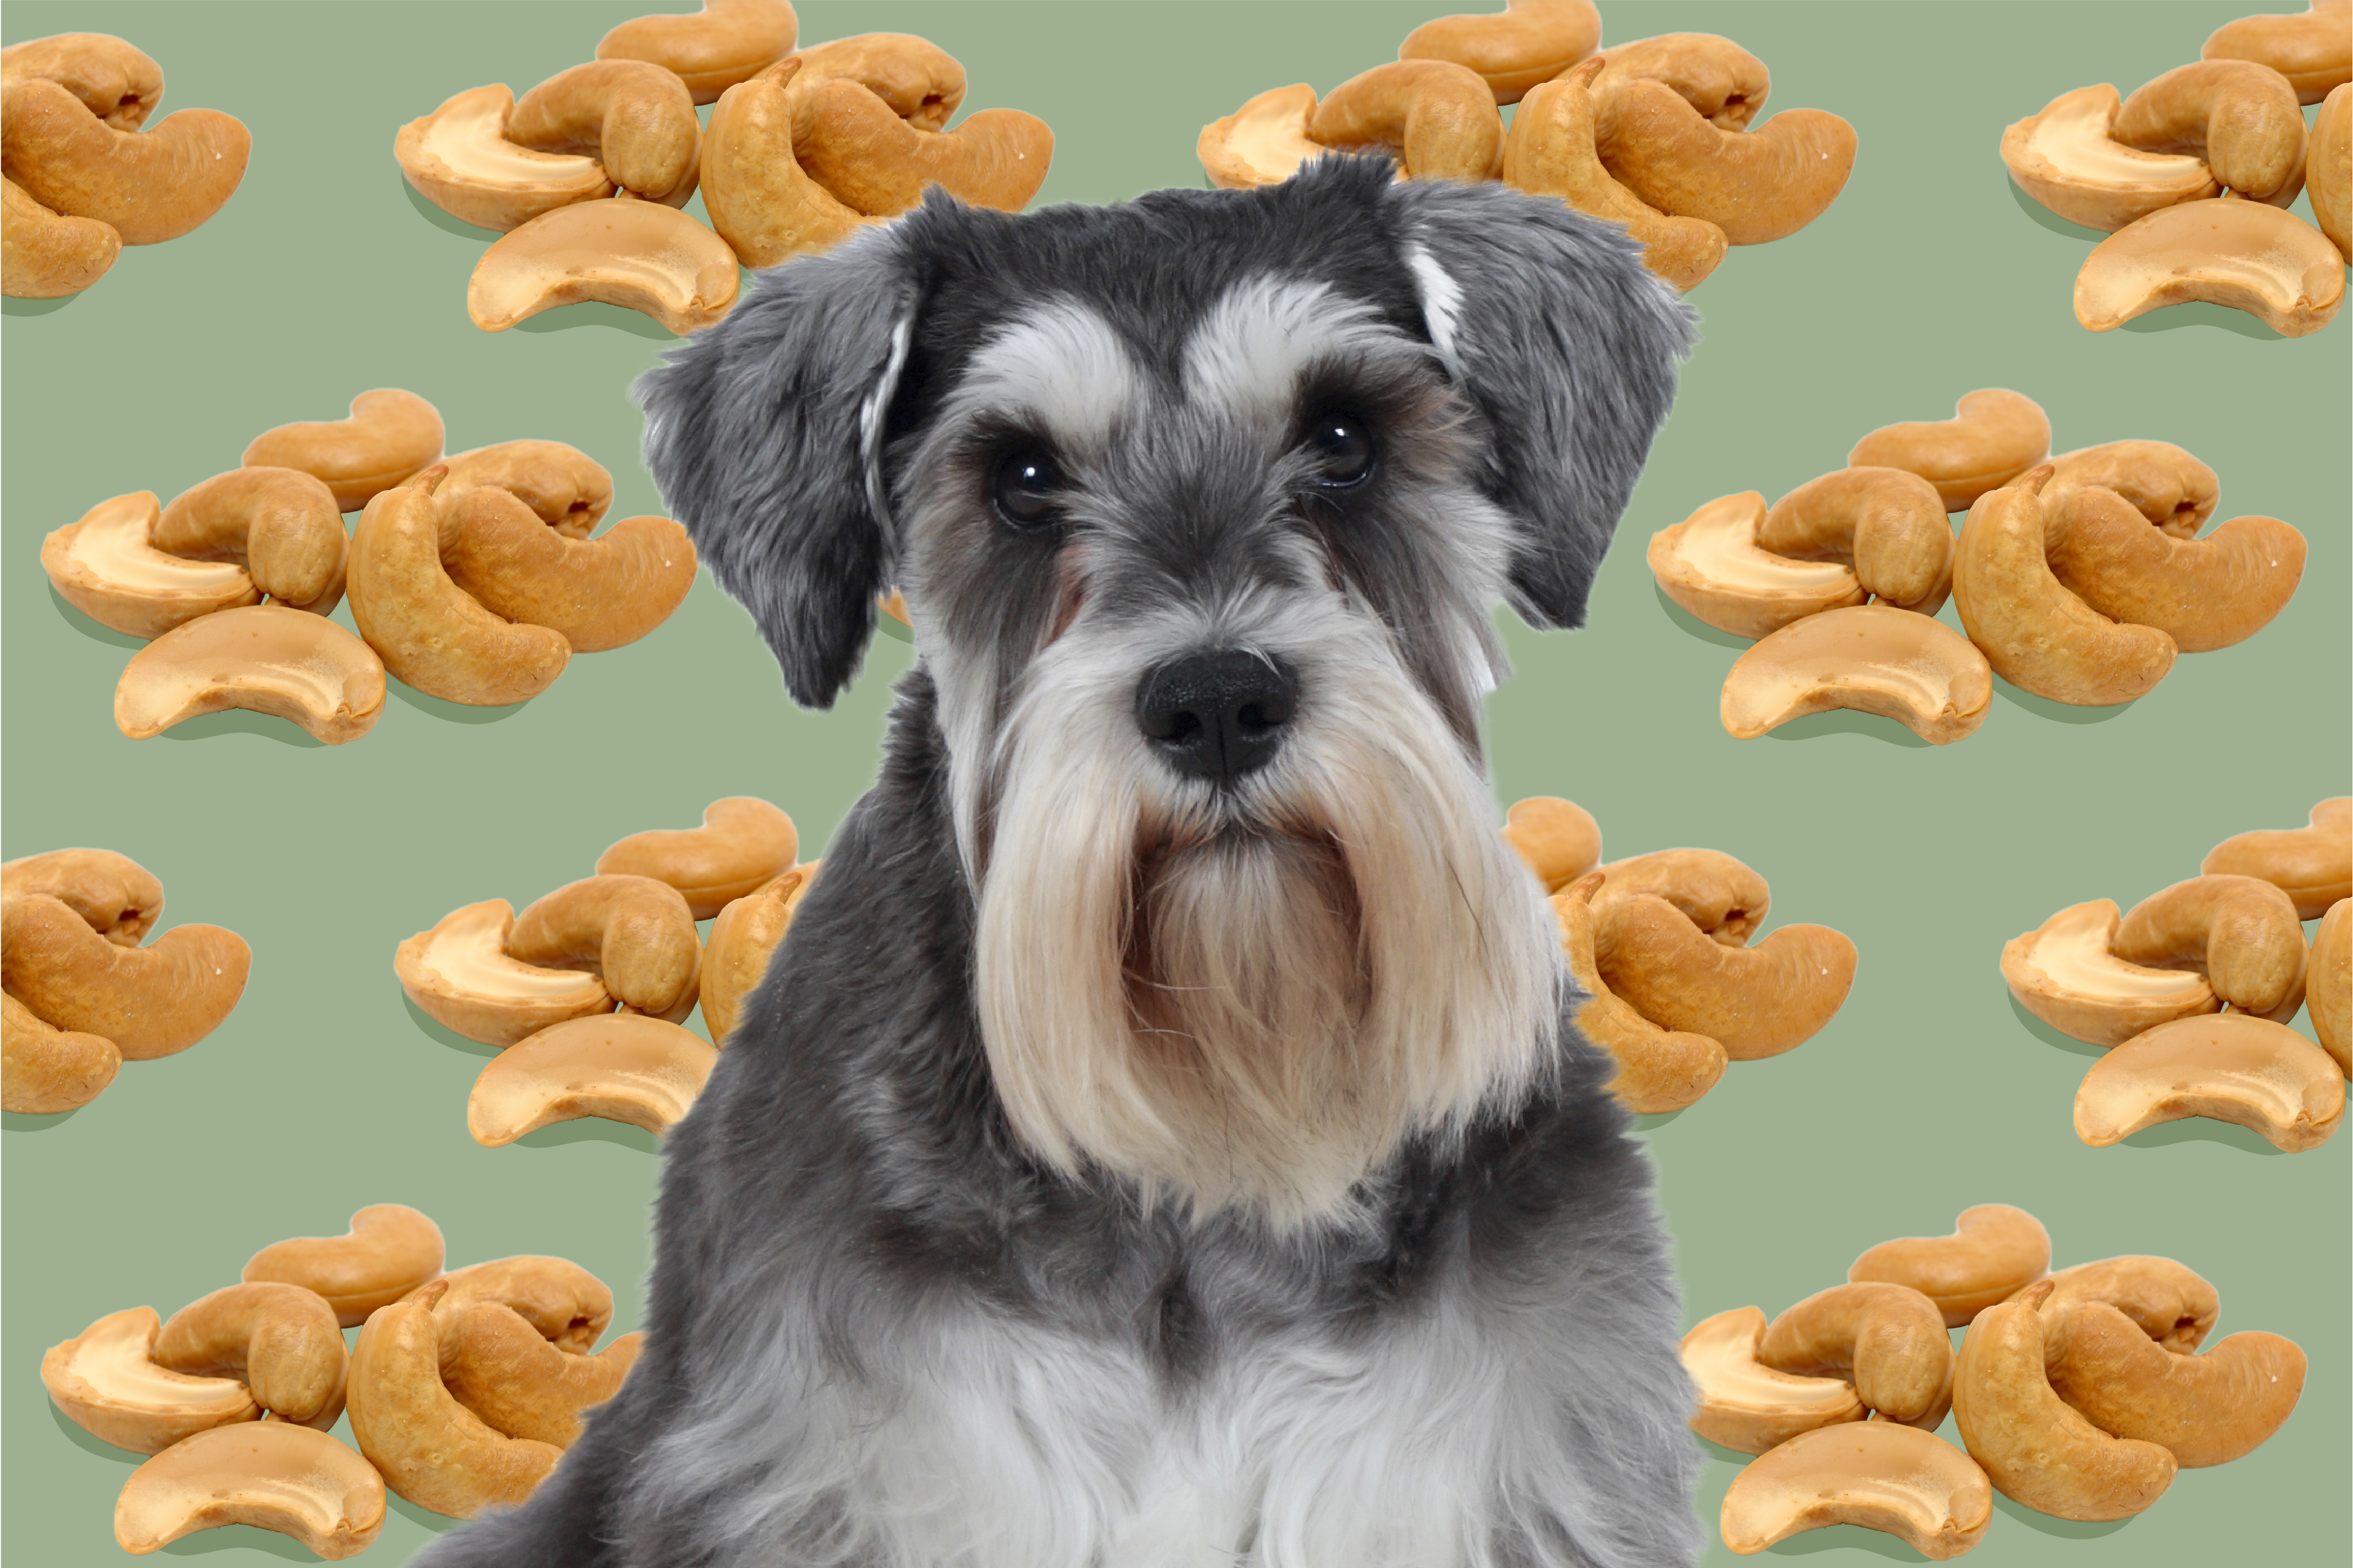 can dogs eat cashews dog in front of cashews on a green backgound